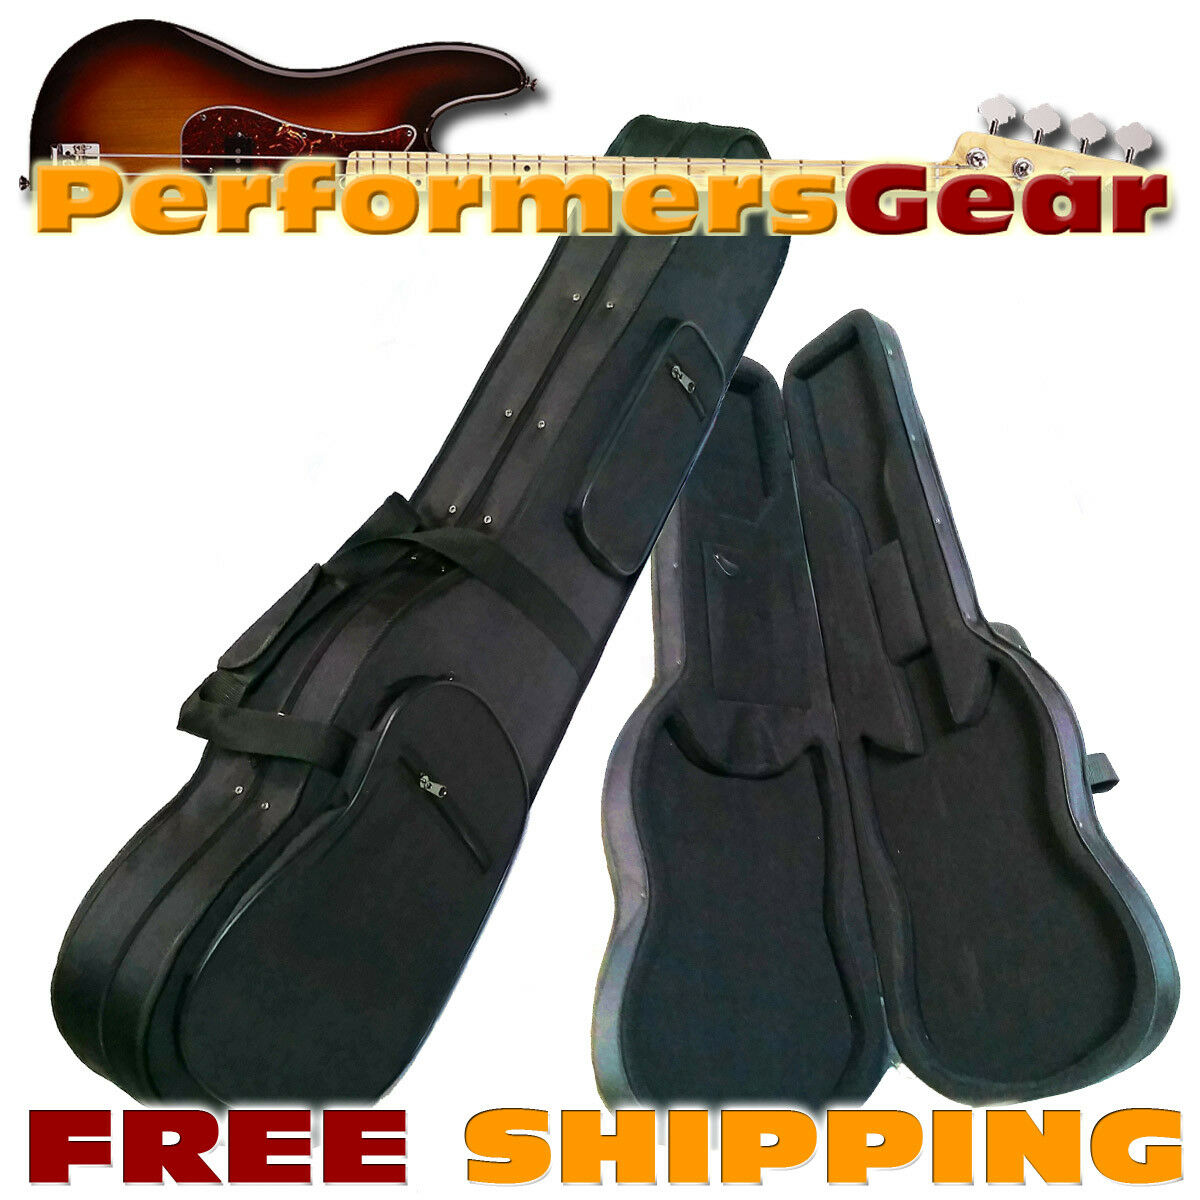 Hard Foam ContouROT Electric Guitar Case w/ Nylon Exterior, form Foam Interior